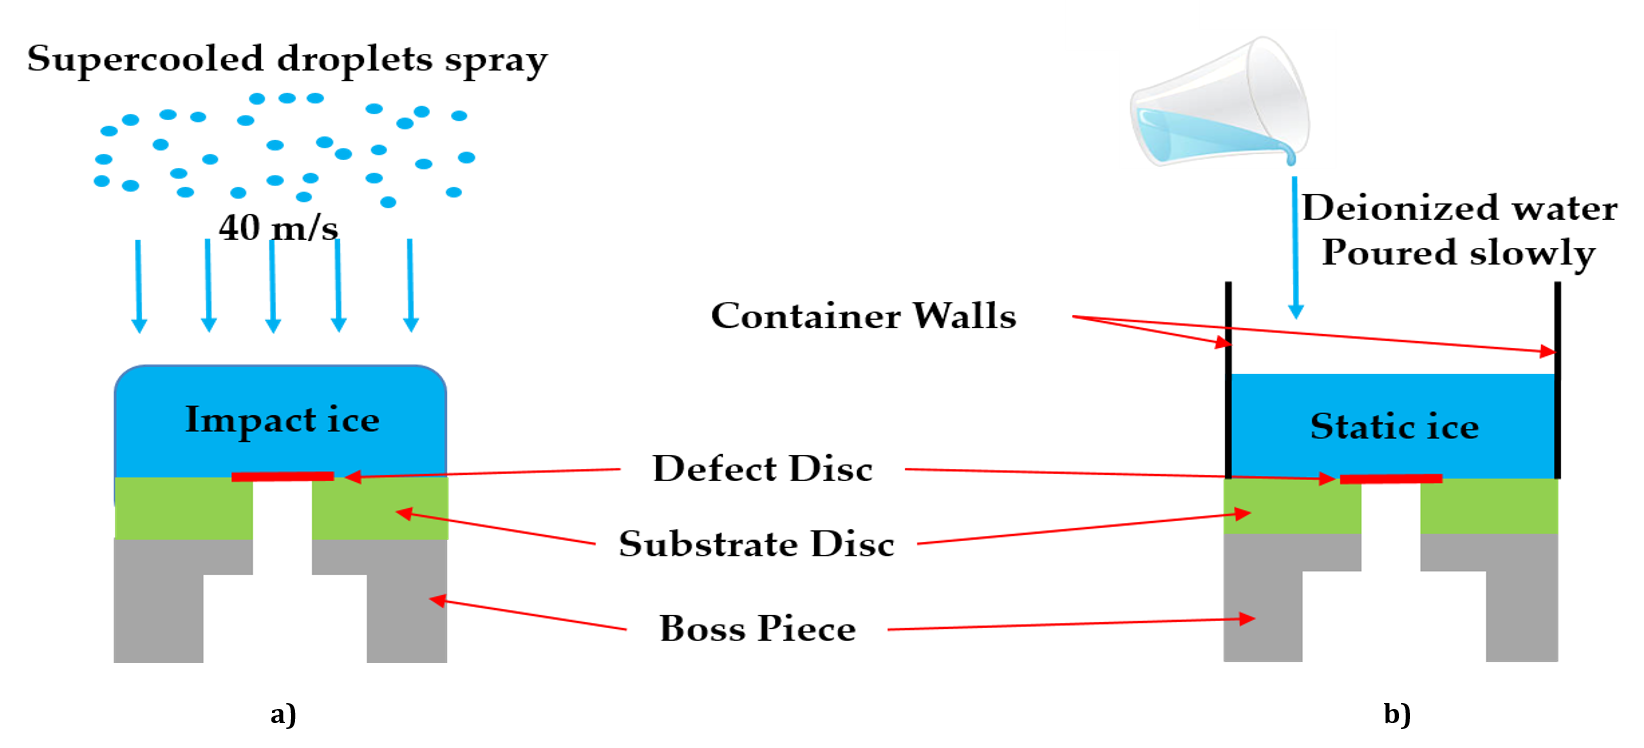 Schematic describing at temperatures below freezing accretion of a) impact ice, and b) static ice.